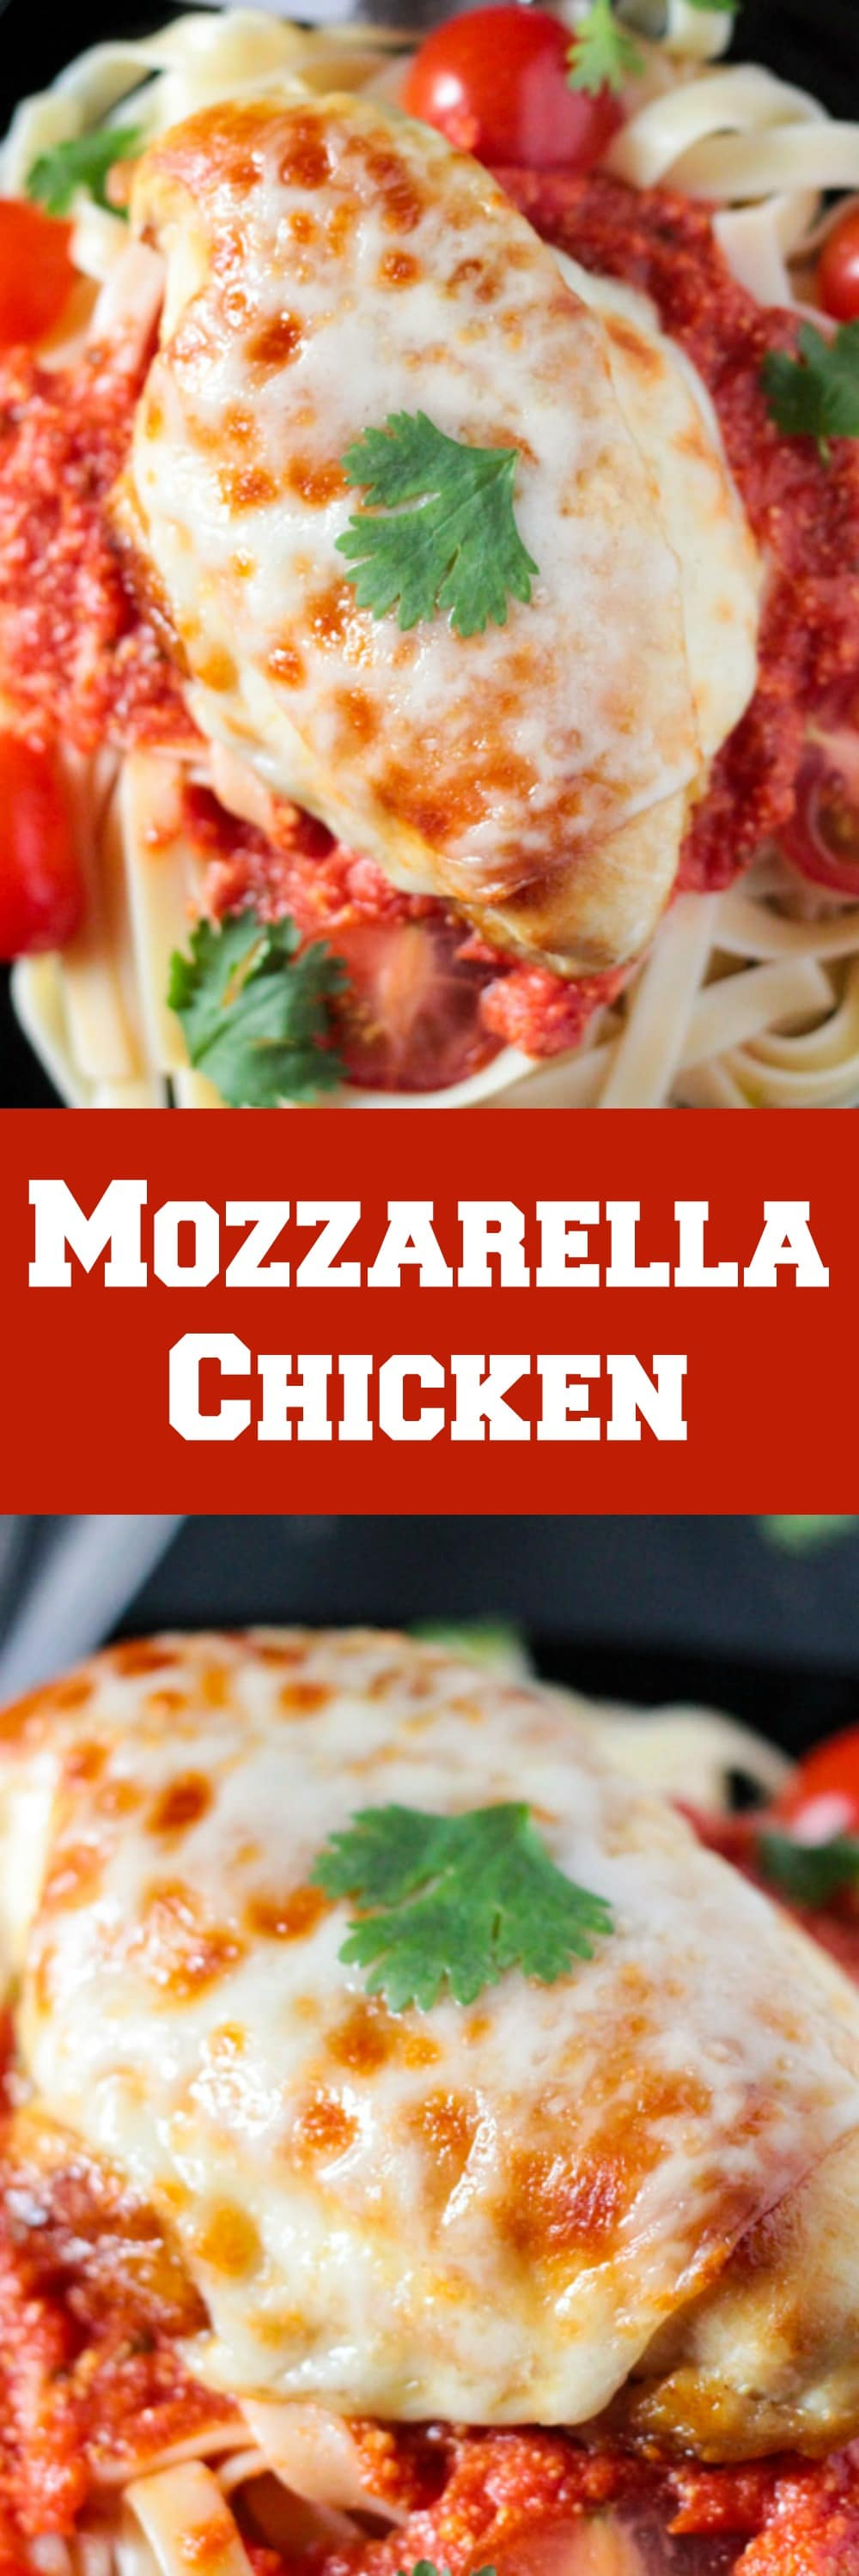 20 Minute Mozzarella Chicken